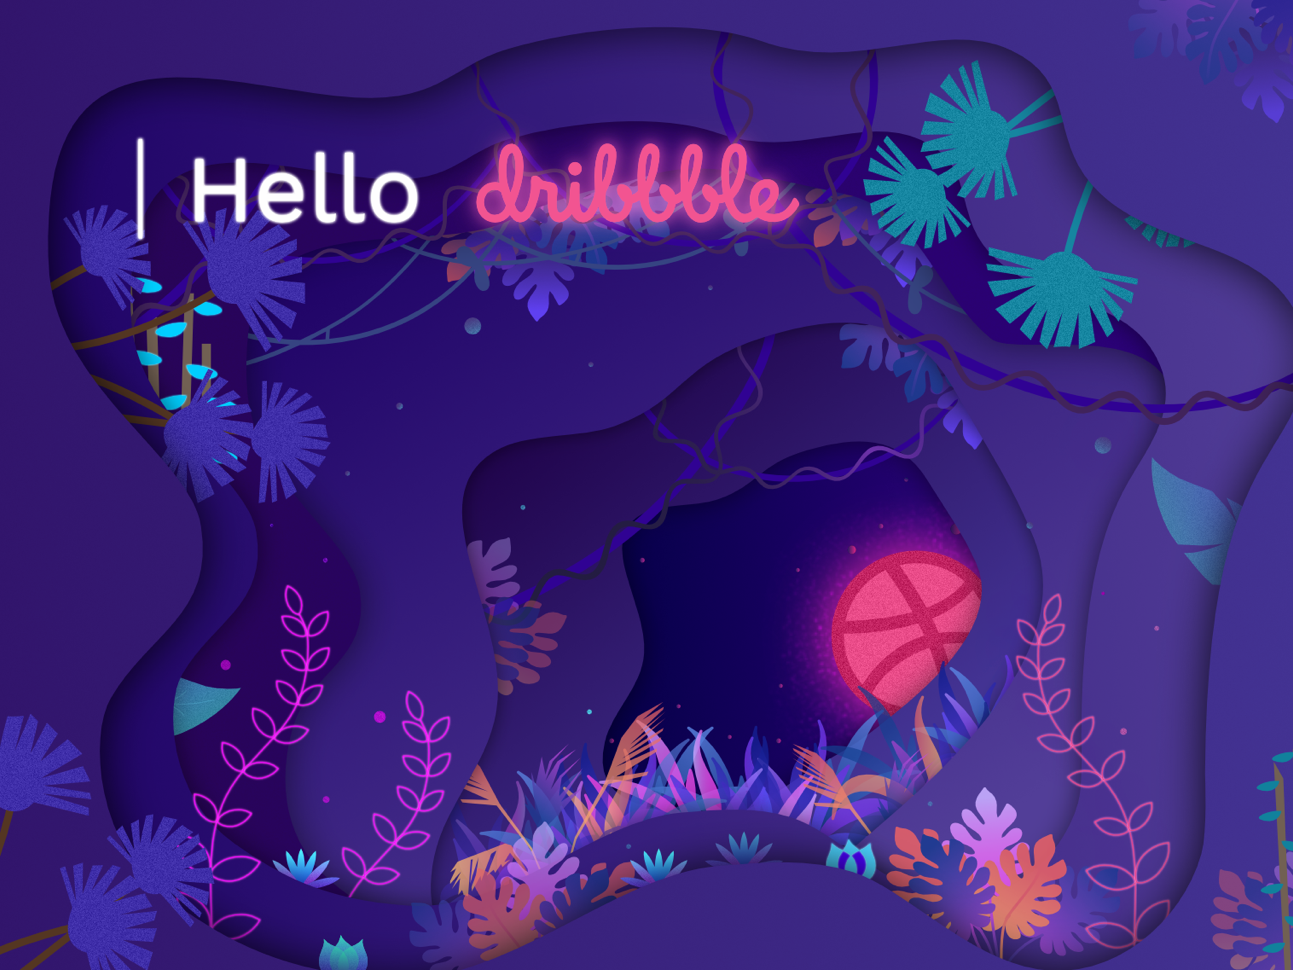 Hello dribbble! affinity designer gradients hello forest dribbble jungle paper cut illustration hello dribbble first shot debut